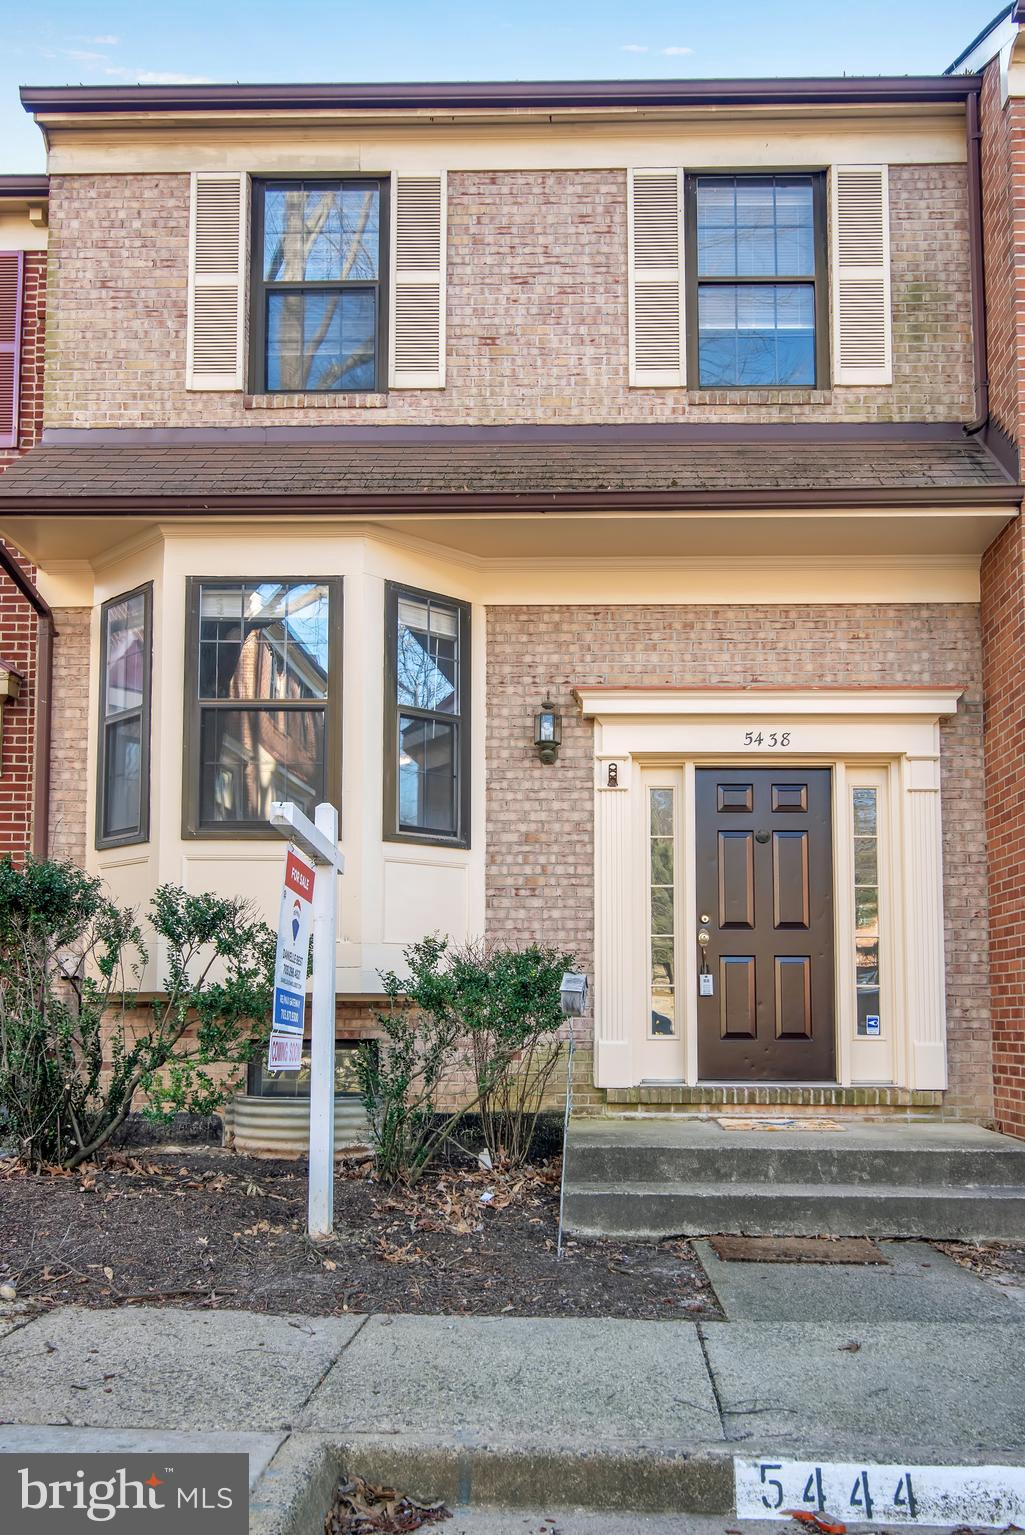 Three-level townhome living in an amazing location! Right off of S. Van Dorn St., close to commuter bus and Metro. Express bus to Pentagon! Quick access to 395! Features fresh paint, new carpet, fireplace in the basement, and fenced rear patio.